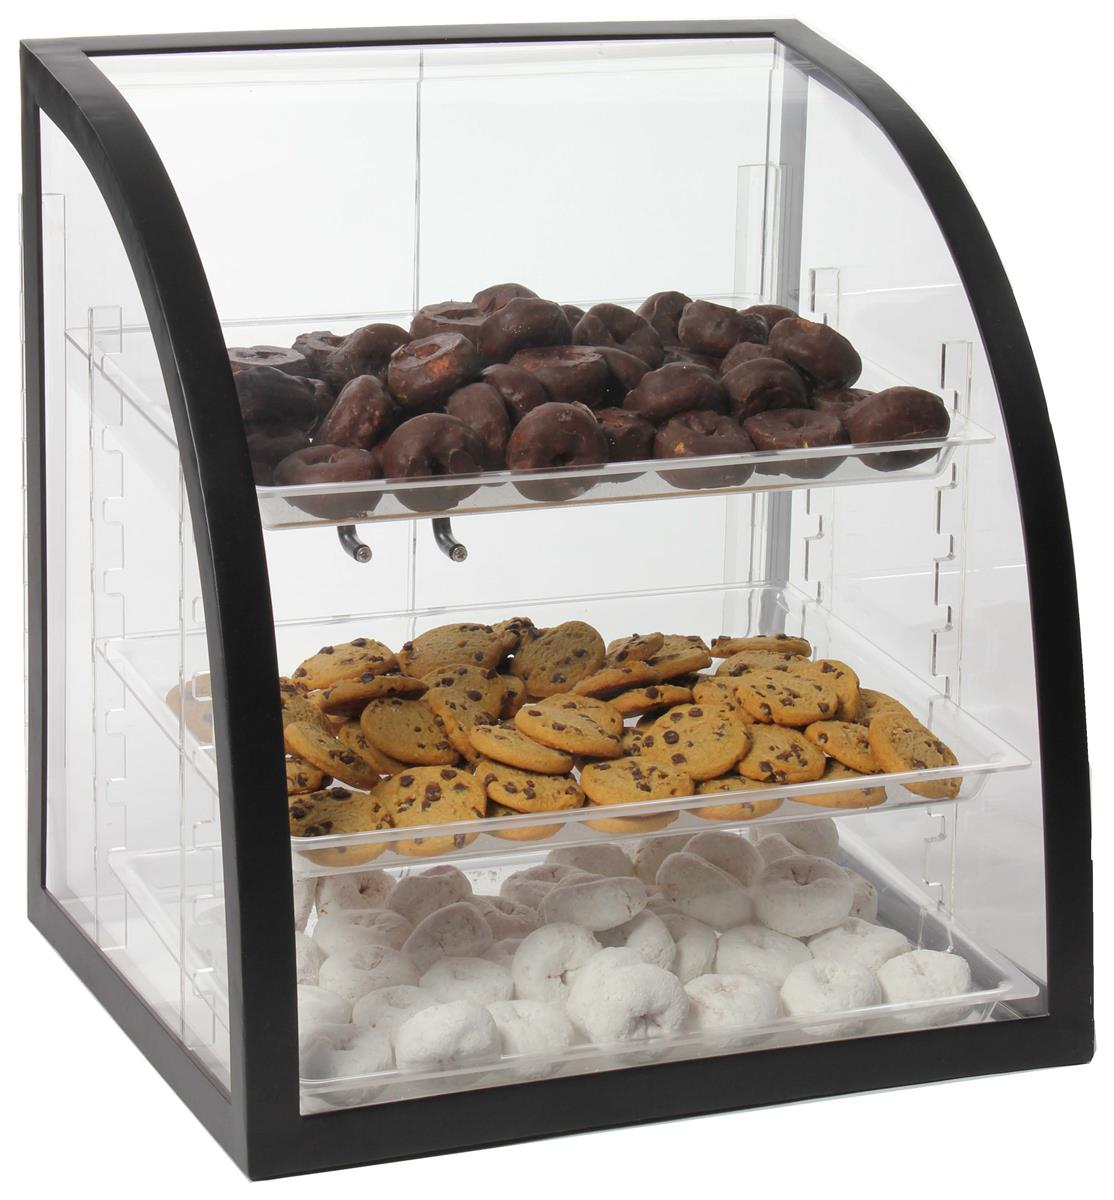 These Acrylic Bakery Displays Use The Tray To Show Cake